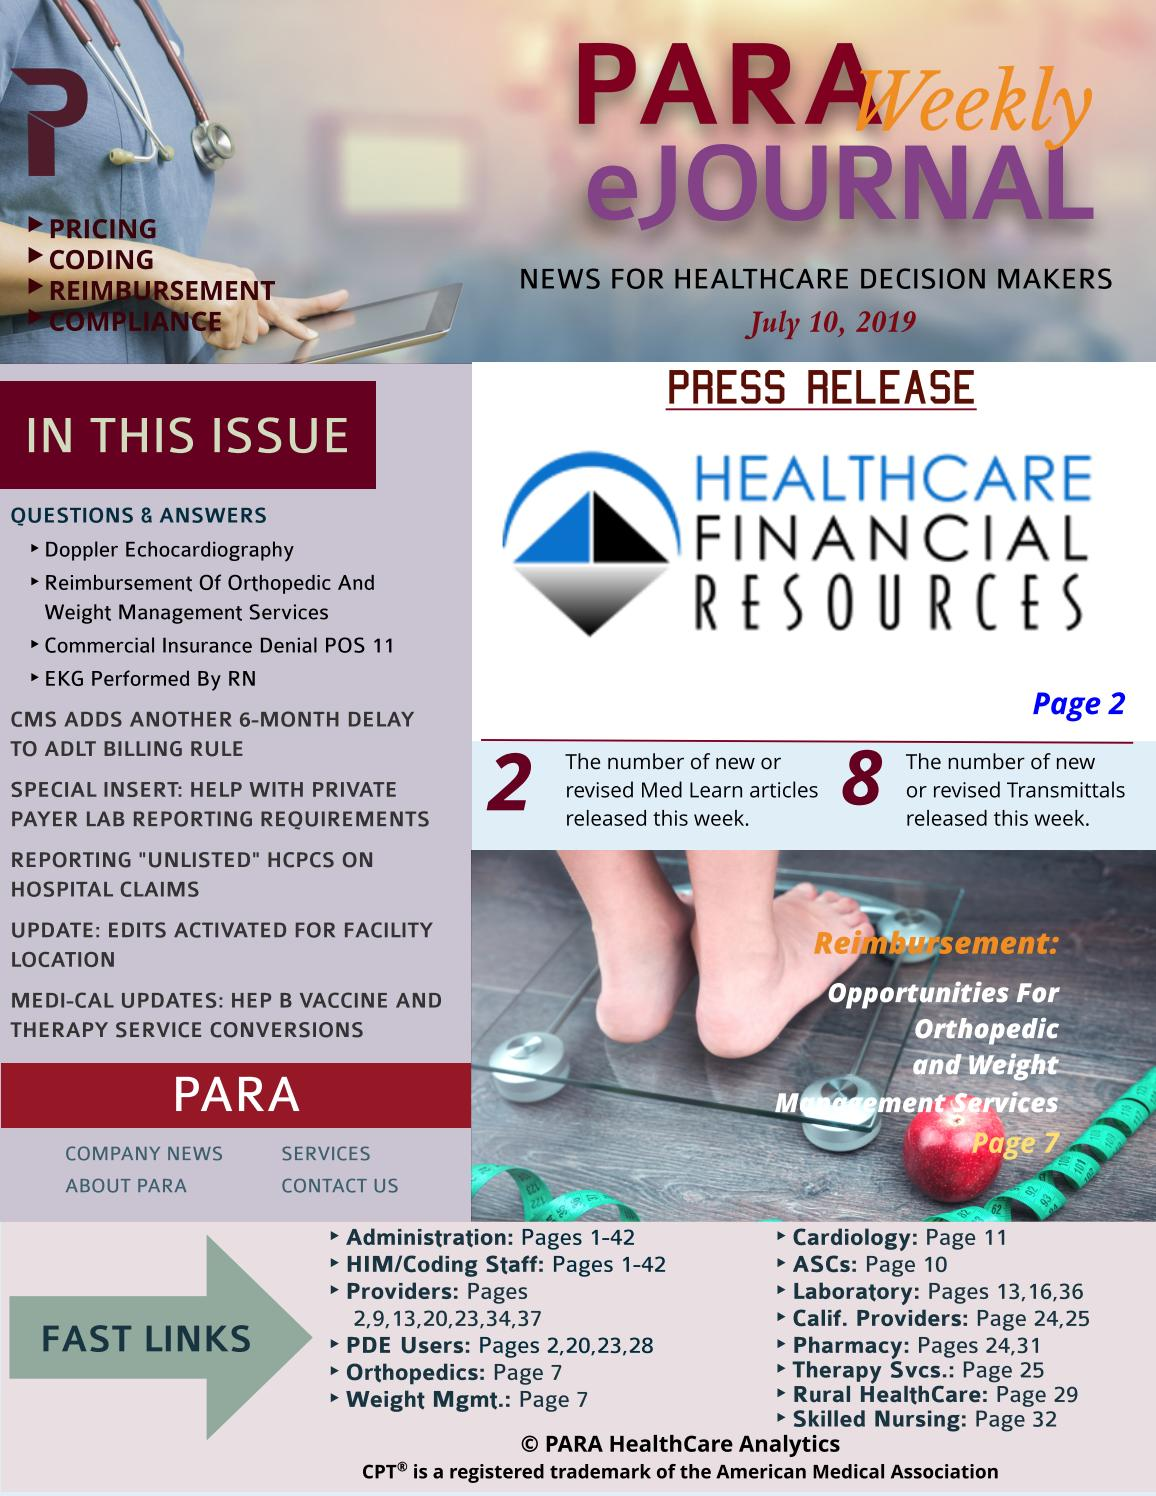 PARA Weekly eJournal July 10, 2019 by PARA HealthCare